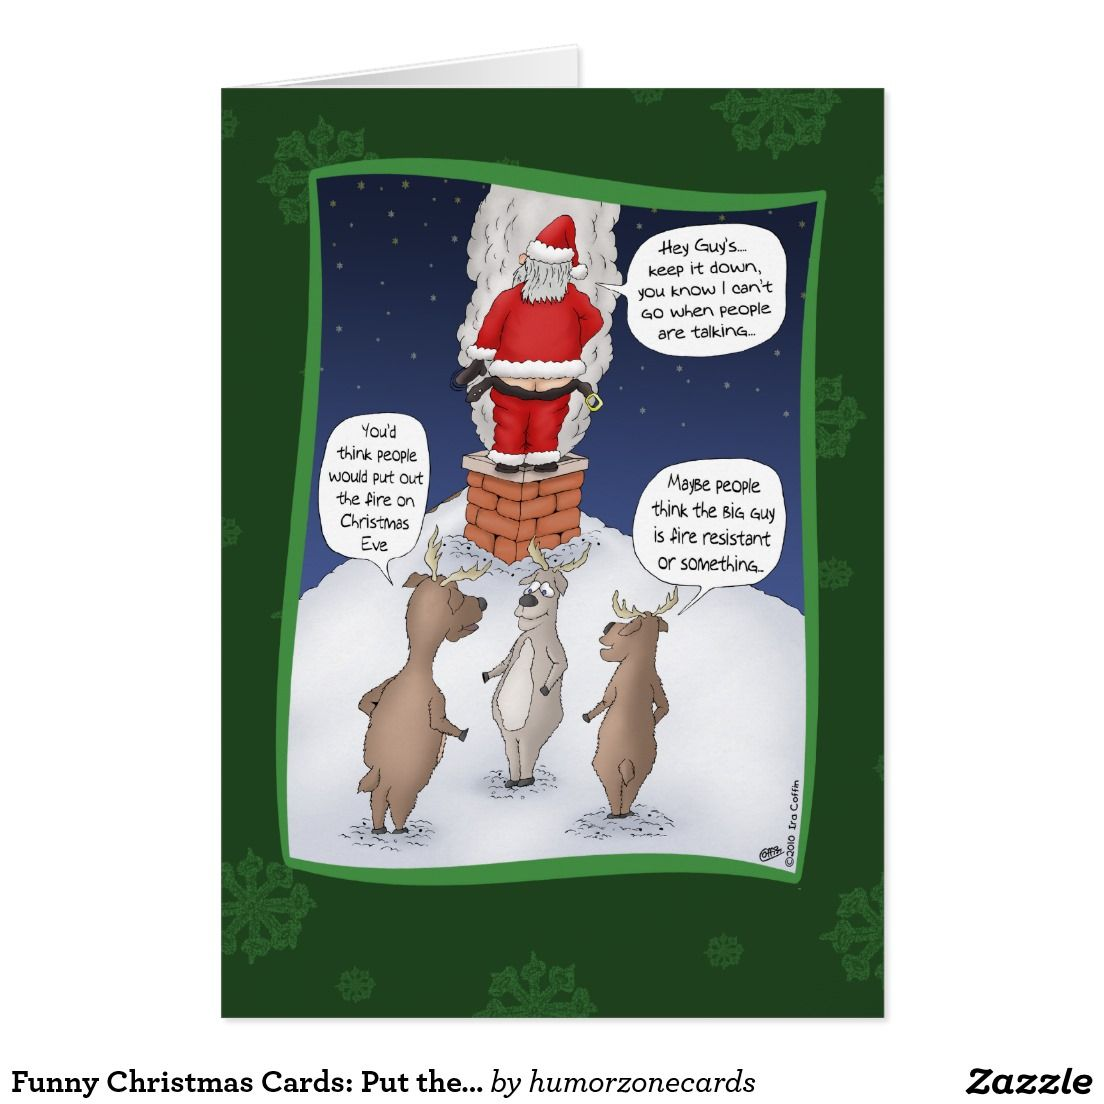 Funny christmas cards put the fire out funny christmas holidays greeting card featuring santa attempting to put out a fire so he can get down the chimney christmas humour kristyandbryce Image collections